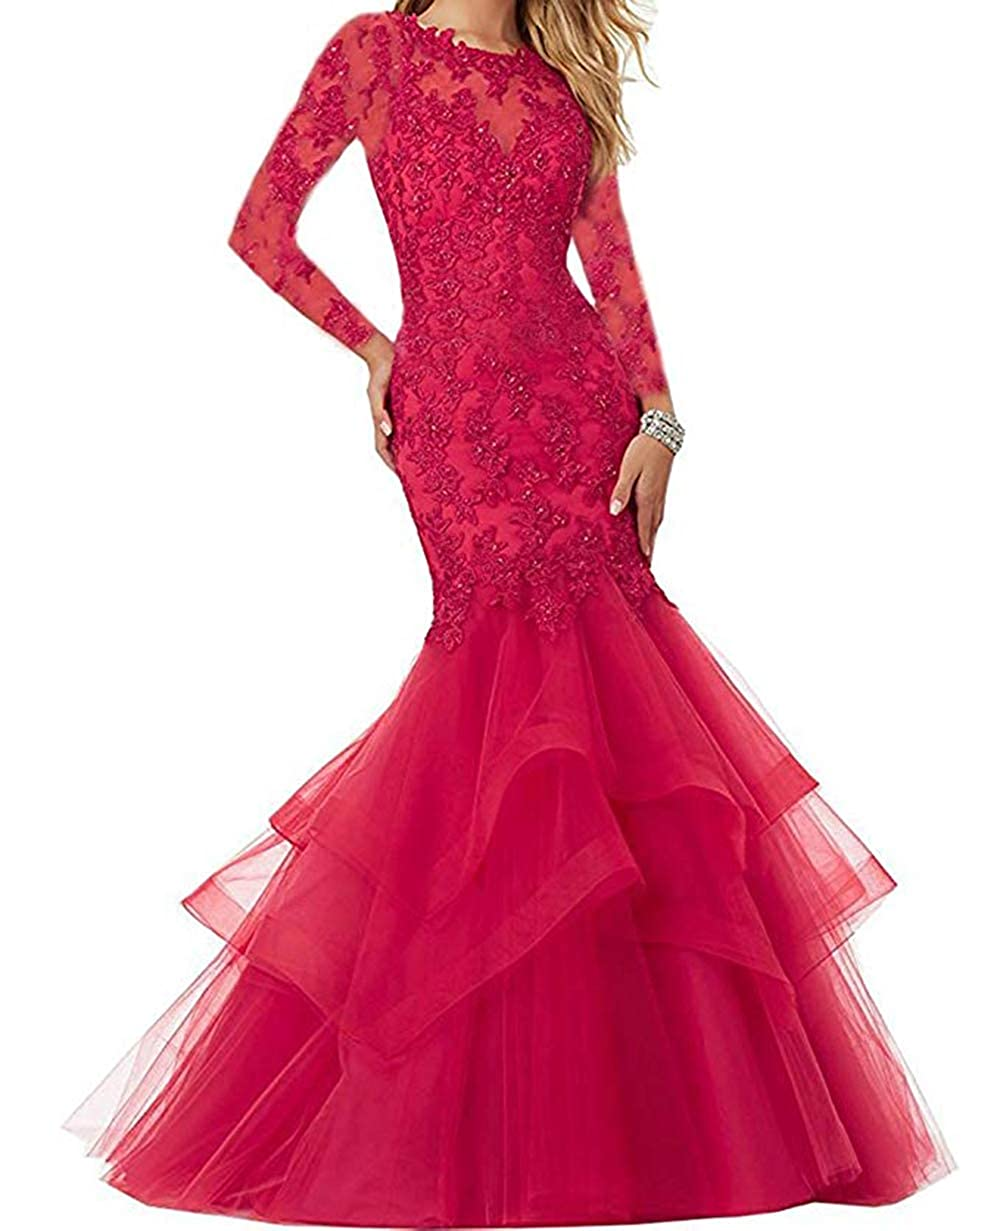 Hot Pink Women's Mermaid Prom Dresses Beaded Lace Appliques Formal Evening Gowns Long Sleeves